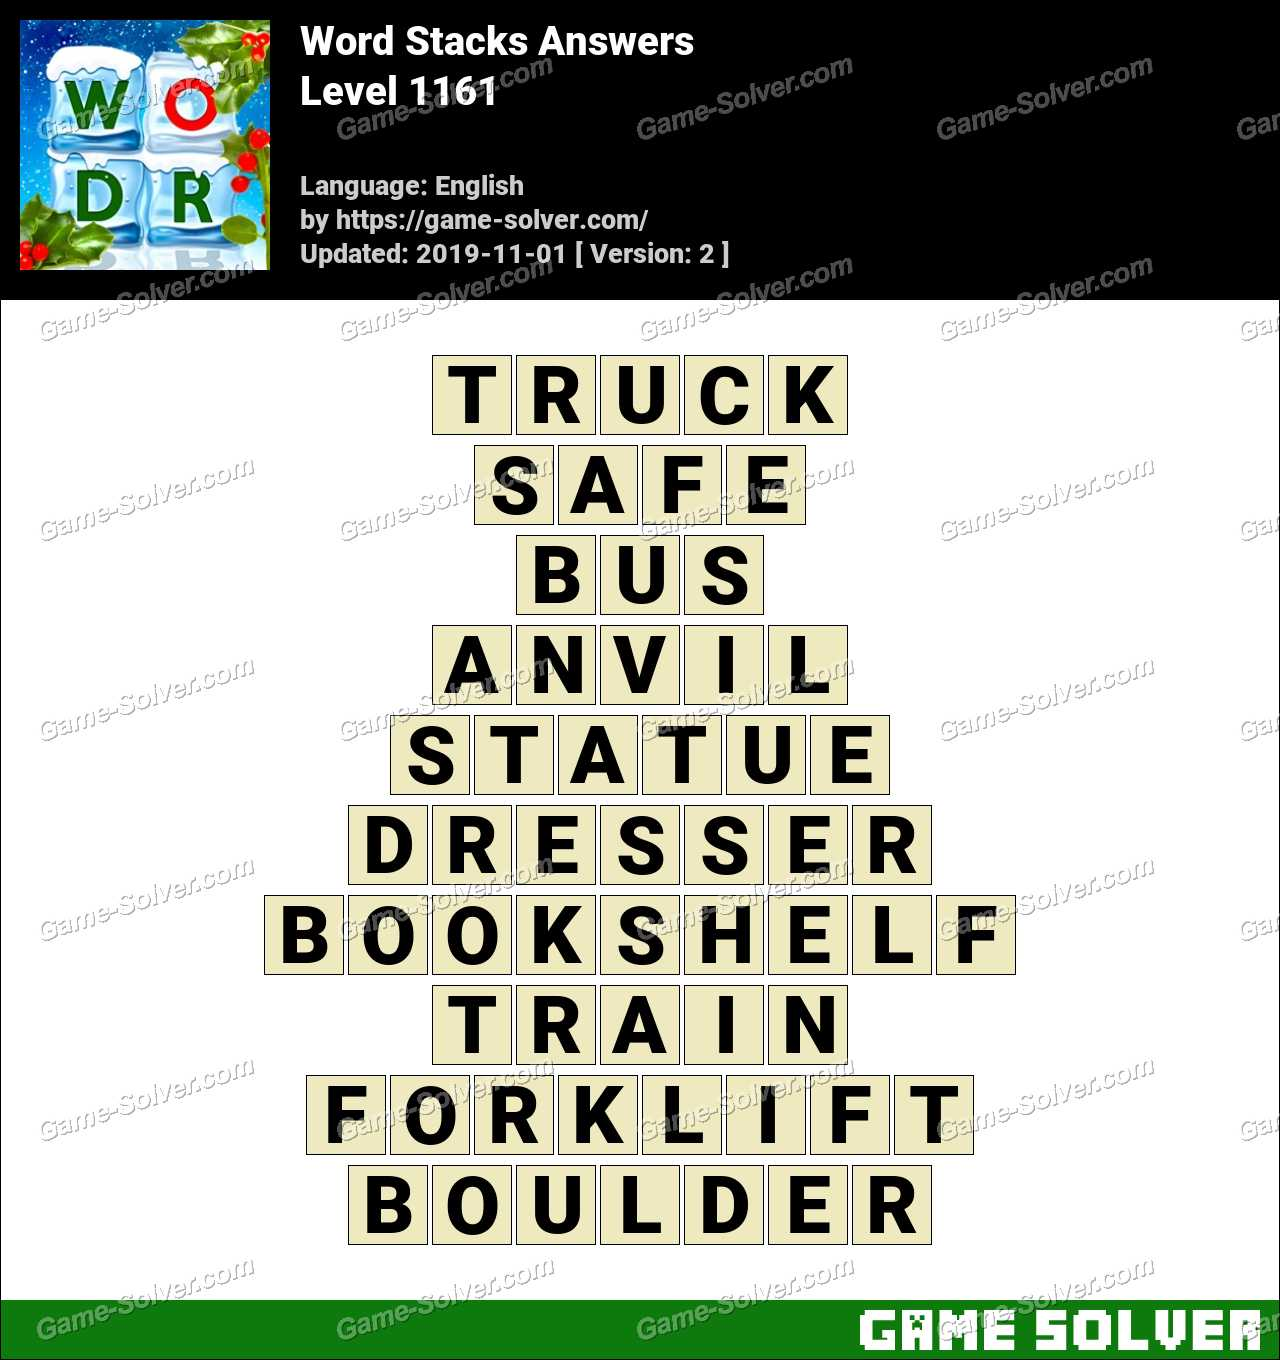 Word Stacks Level 1161 Answers